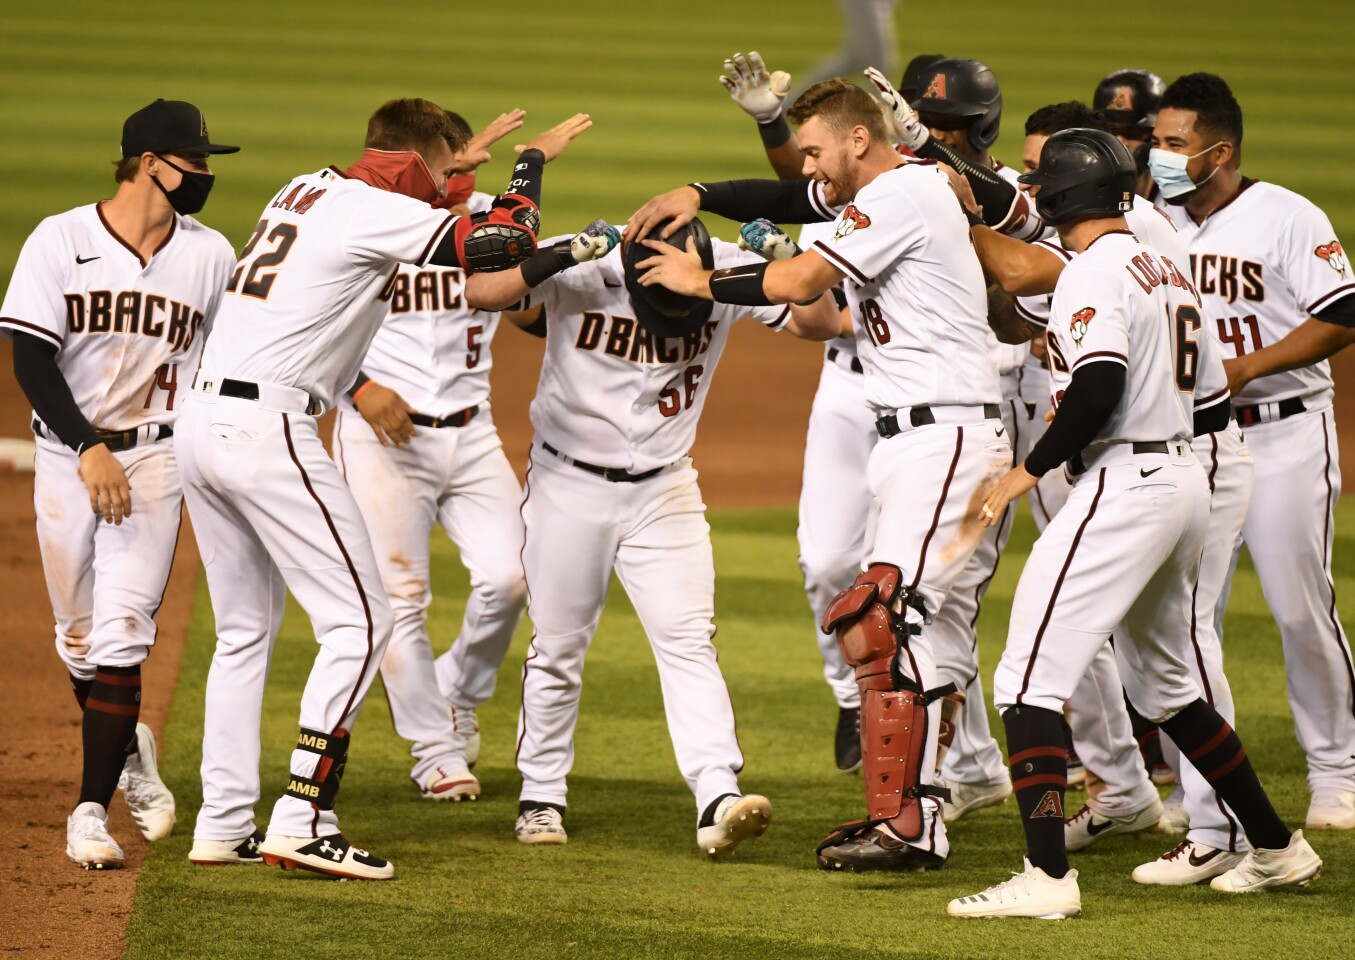 PHOENIX, ARIZONA - AUGUST 06: Kole Calhoun #56 of the Arizona Diamondbacks celebrates with Carson Kelly #18, Jake Lamb #22 and teammates after hitting a walk off two run single during the ninth inning for a 5-4 win against the Houston Astros at Chase Field on August 06, 2020 in Phoenix, Arizona. (Photo by Norm Hall/Getty Images)